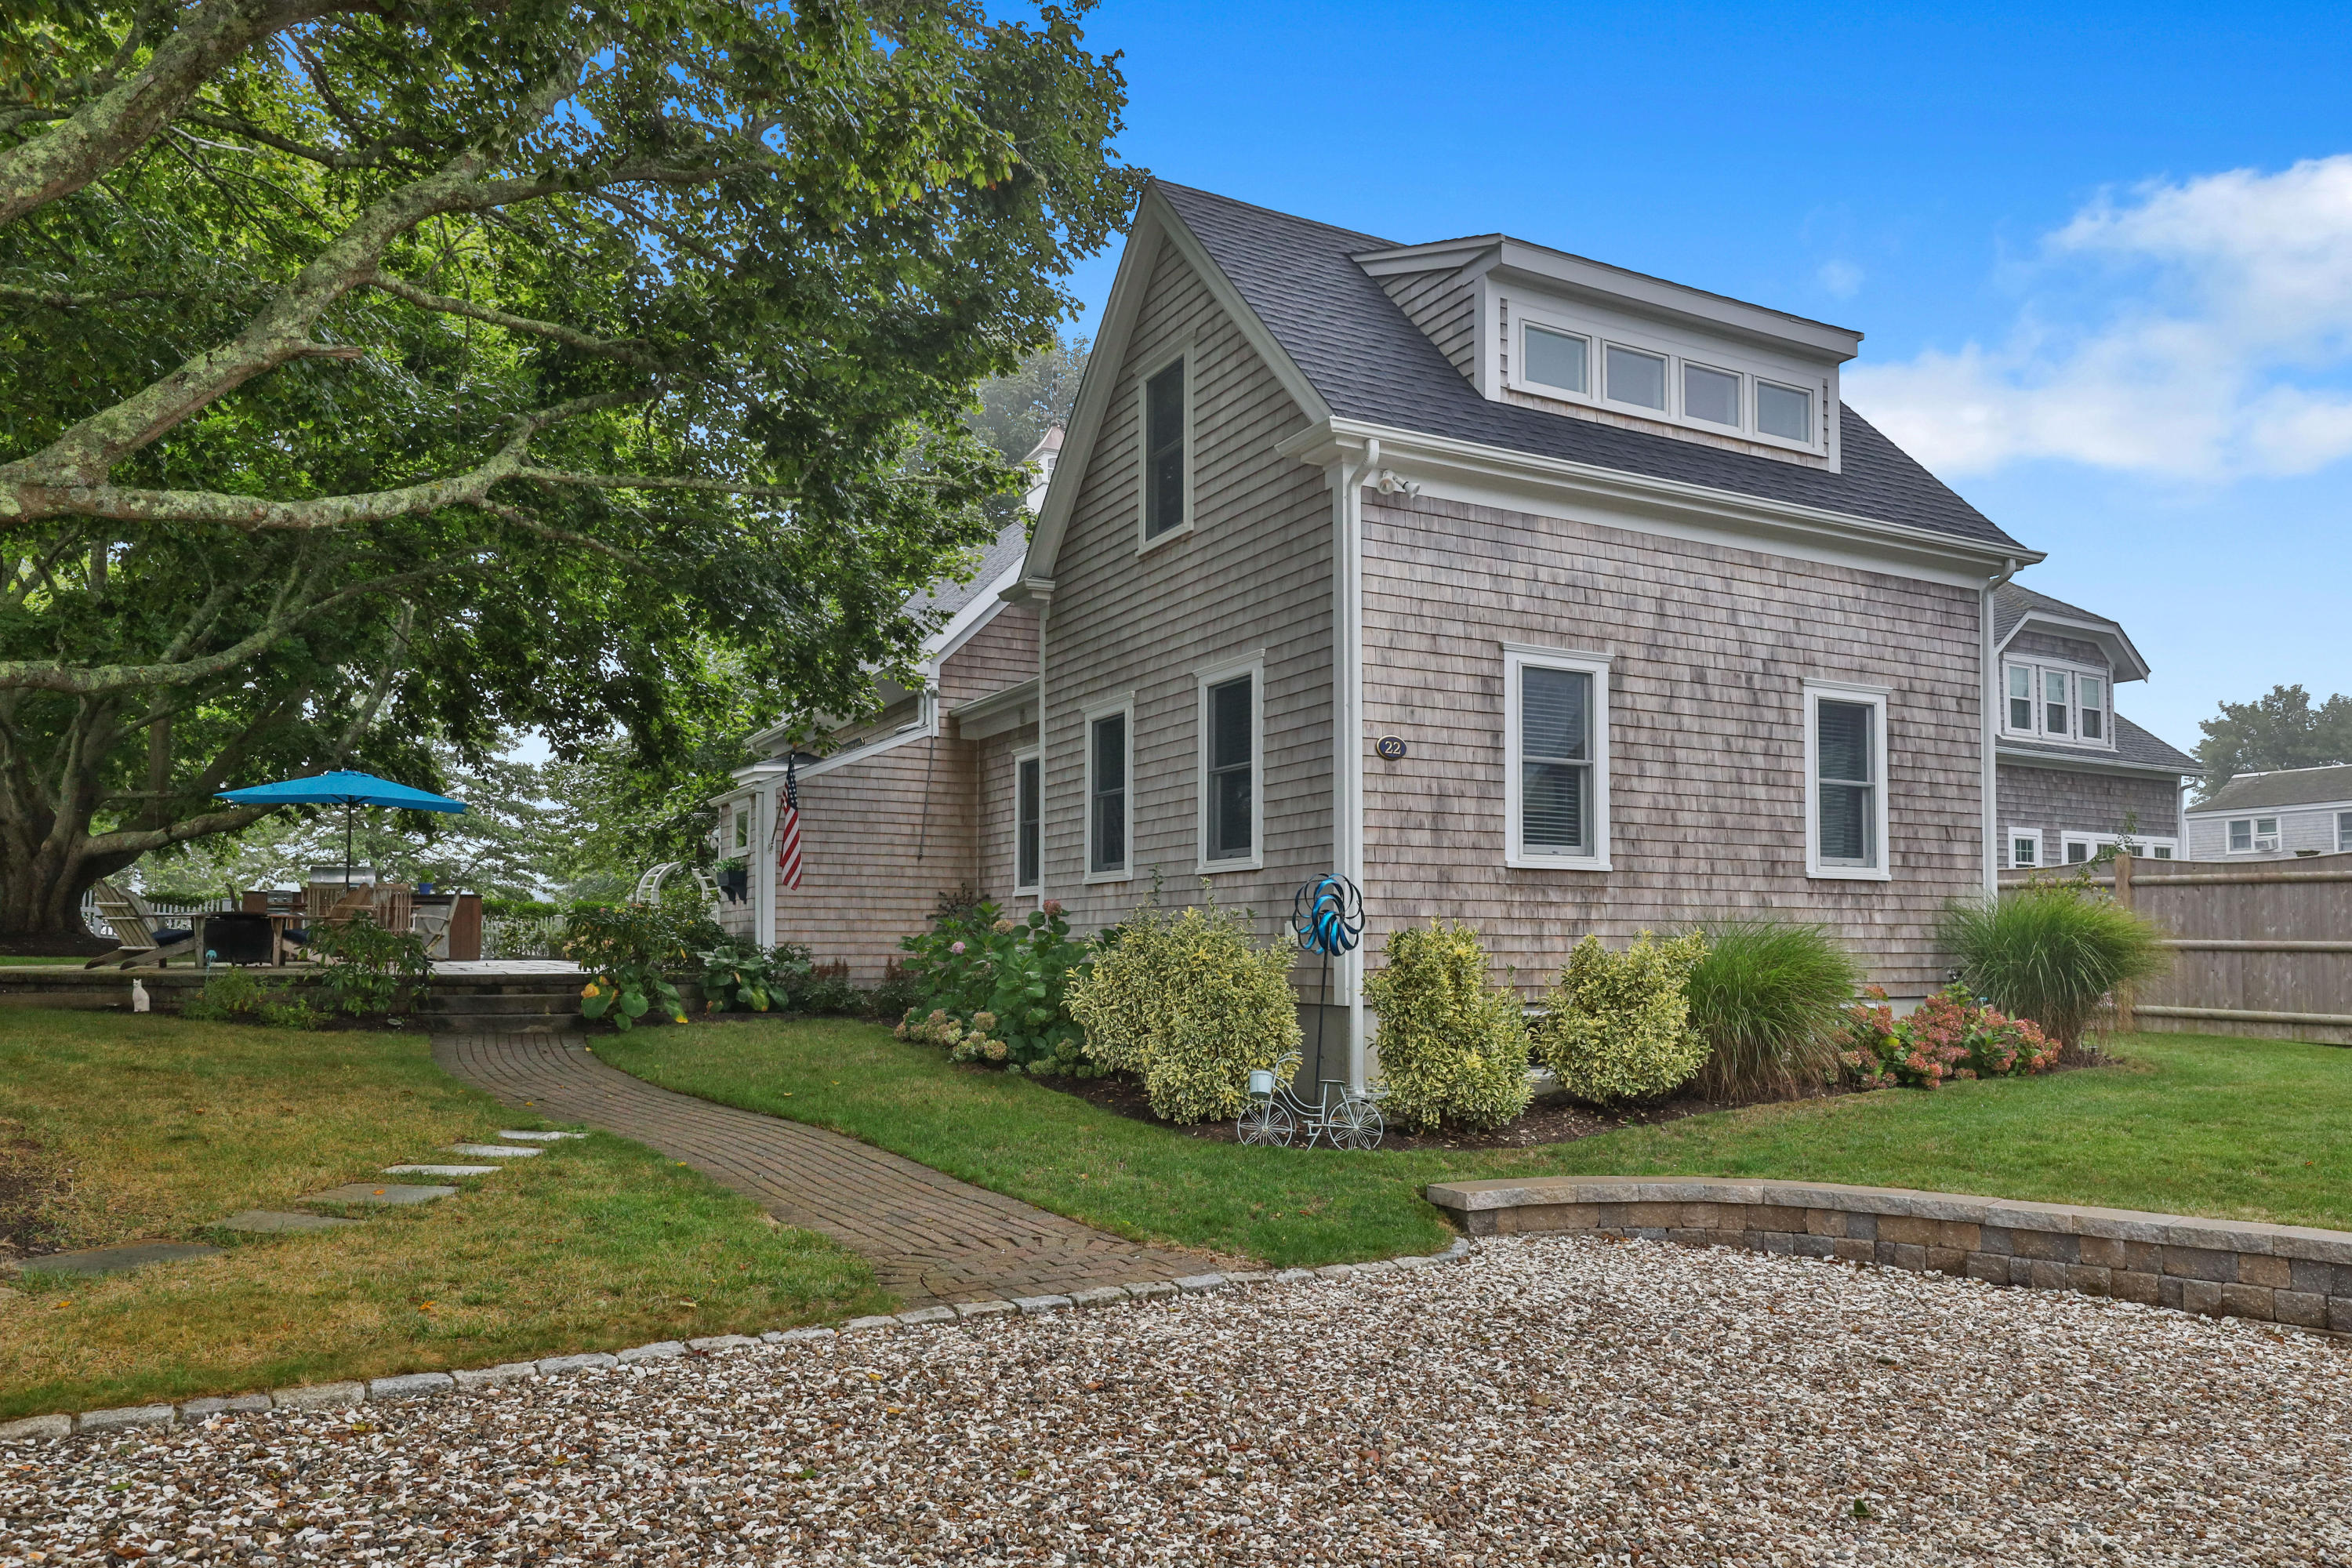 22 Veterans Field Road, Chatham MA, 02633 sales details